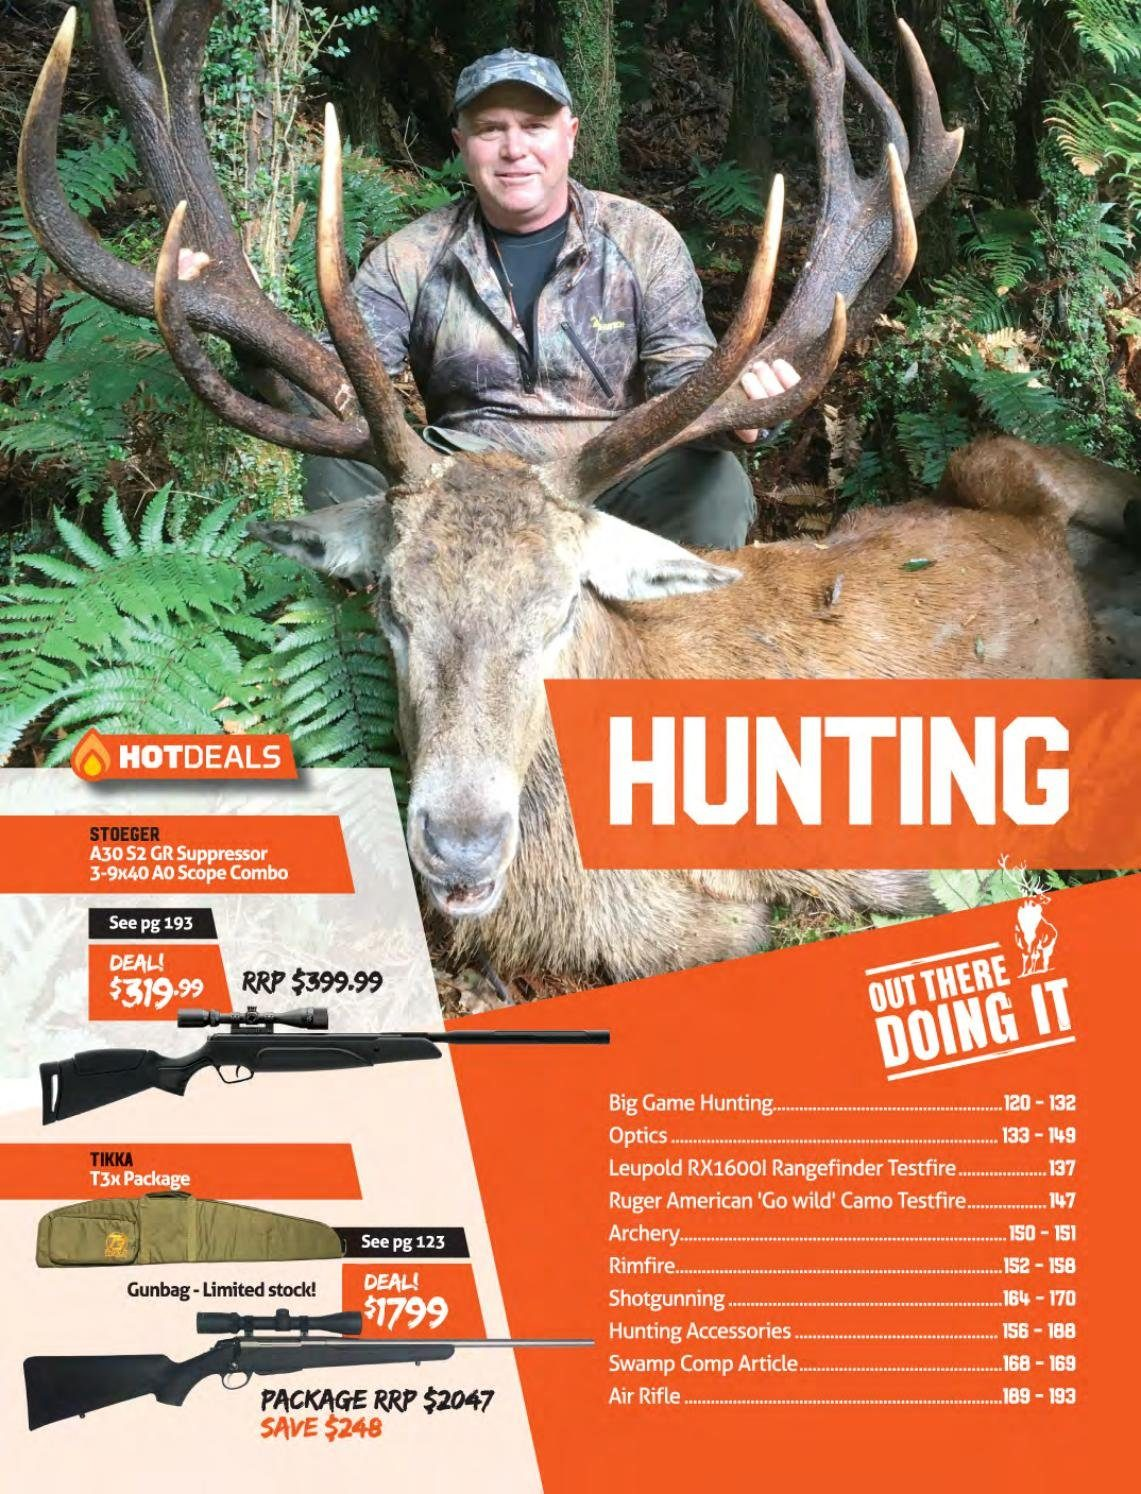 Hunting & Fishing mailer - Sales products - Stoeger. Page 119.